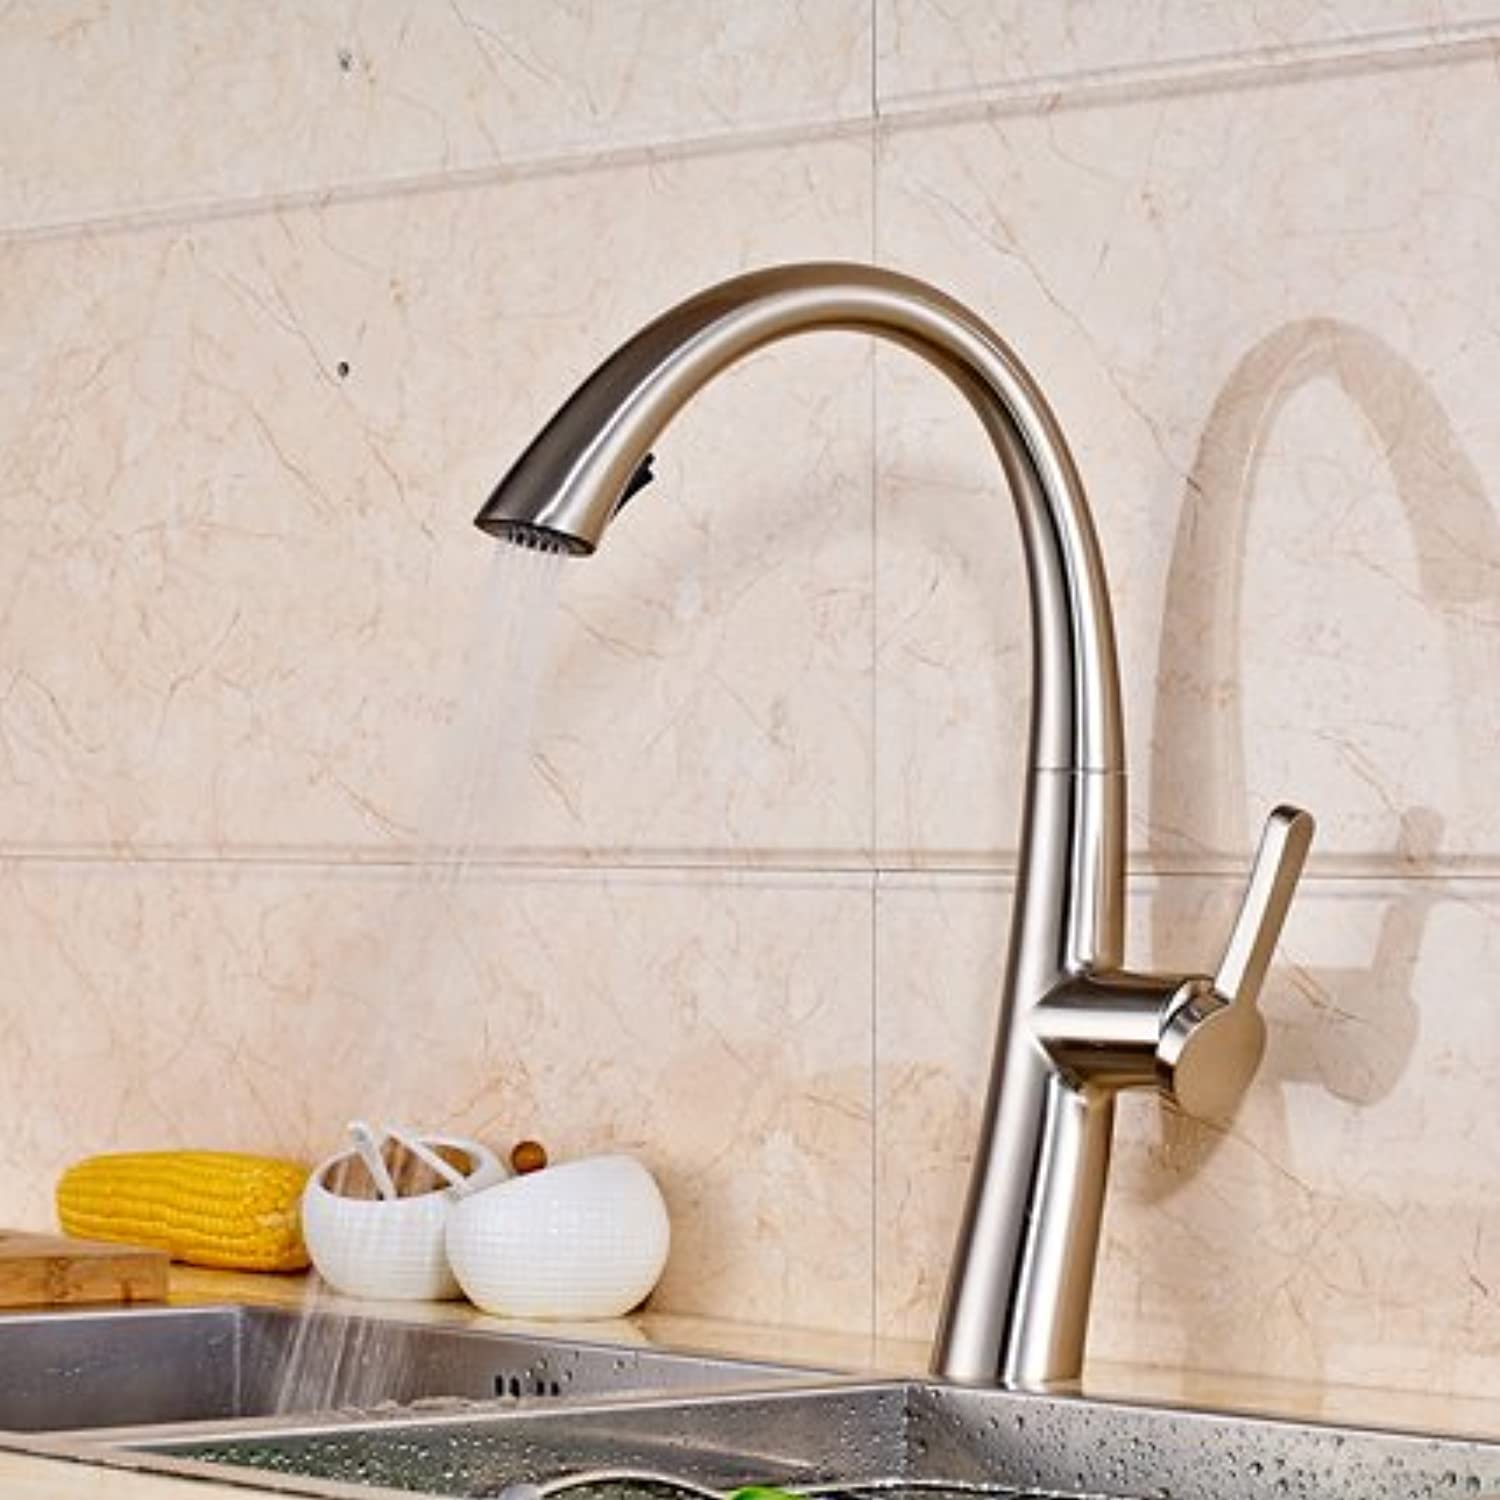 Maifeini Best Quality In The Deck Pull Out The Kitchen Sink Bathroom Faucets Single Handle Turn Feed Throat And Hot And Cold Kitchen Faucet,